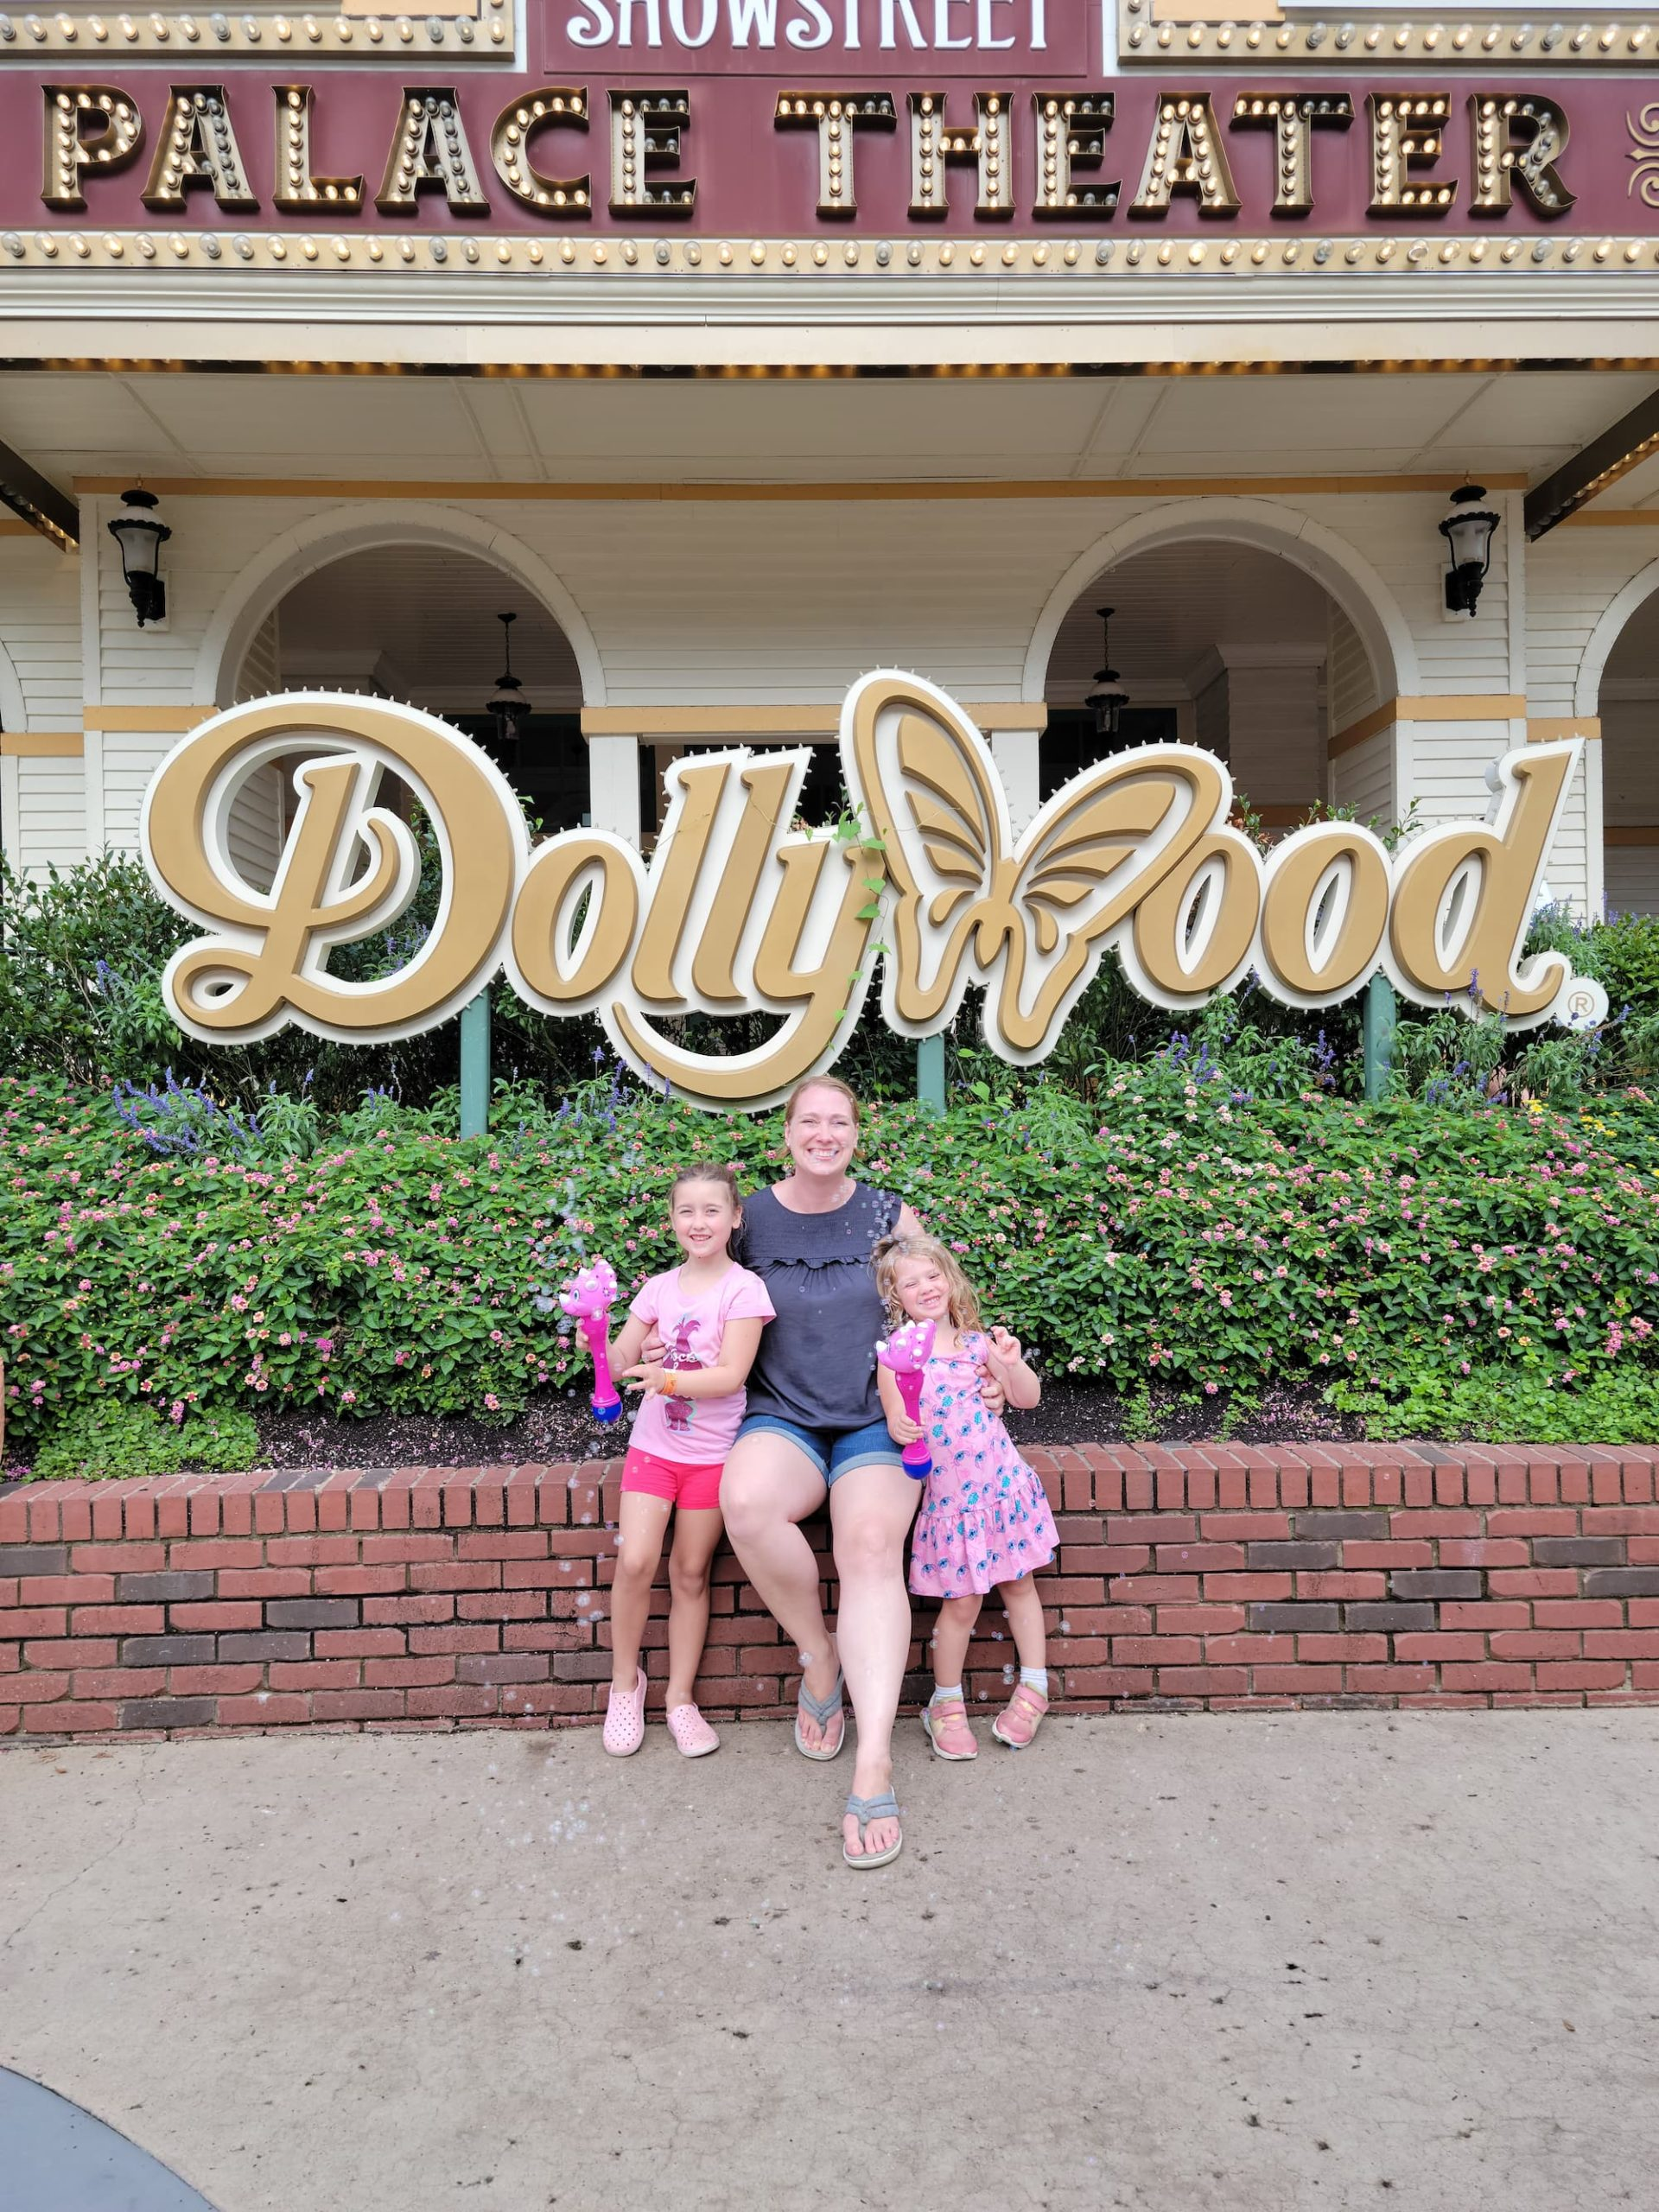 Visiting Dollywood with Kids: Know Before You Go